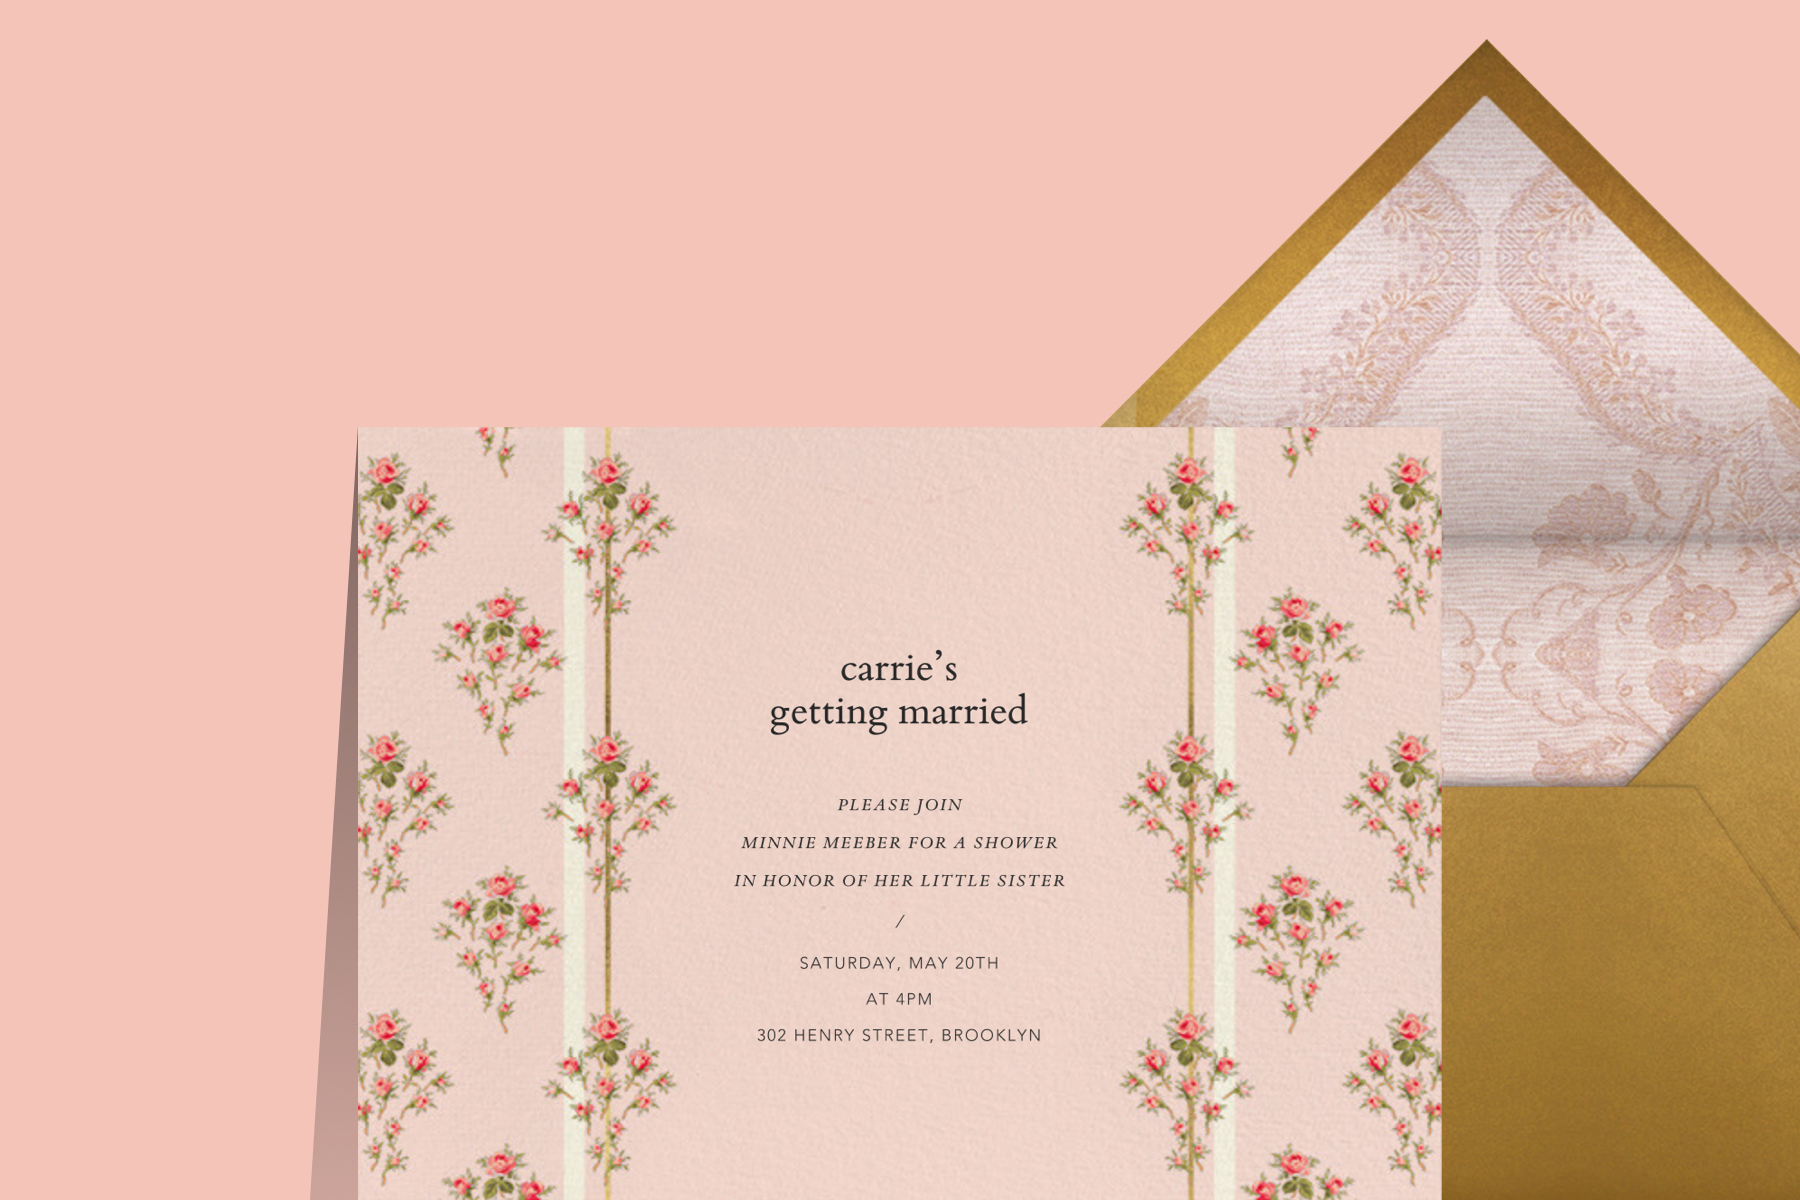 Brock Collection bridal shower invitation from Paperless Post